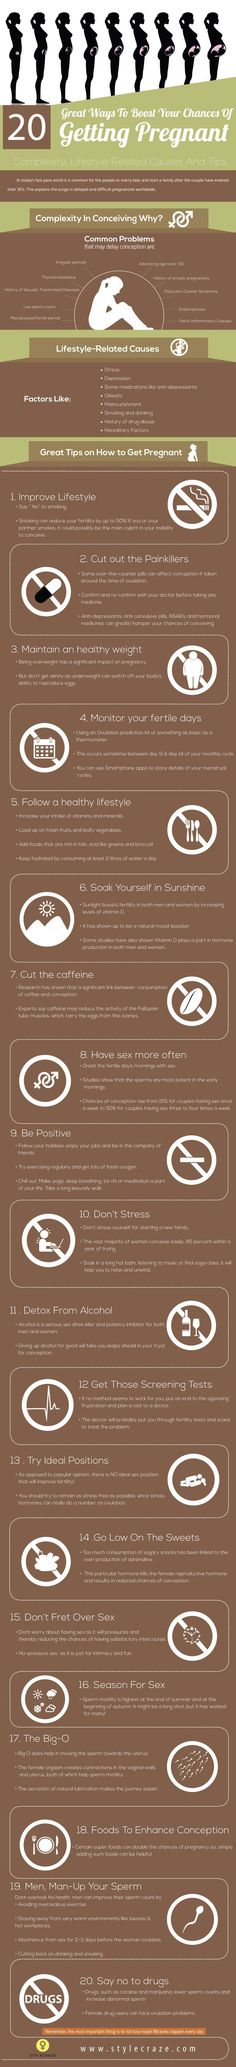 21 Useful Tips To Improve Your Chances Of Pregnancy 20 Great Tips To Improve Your Chances Of Getting Pregnant preparing for pregnancy prepar for pregnancy Chances Of Pregnancy, Chances Of Getting Pregnant, Pre Pregnancy, Pregnancy Info, Prepping For Pregnancy, Symptoms Pregnancy, Pregnancy Announcements, Pregnancy Care, Pregnancy Workout